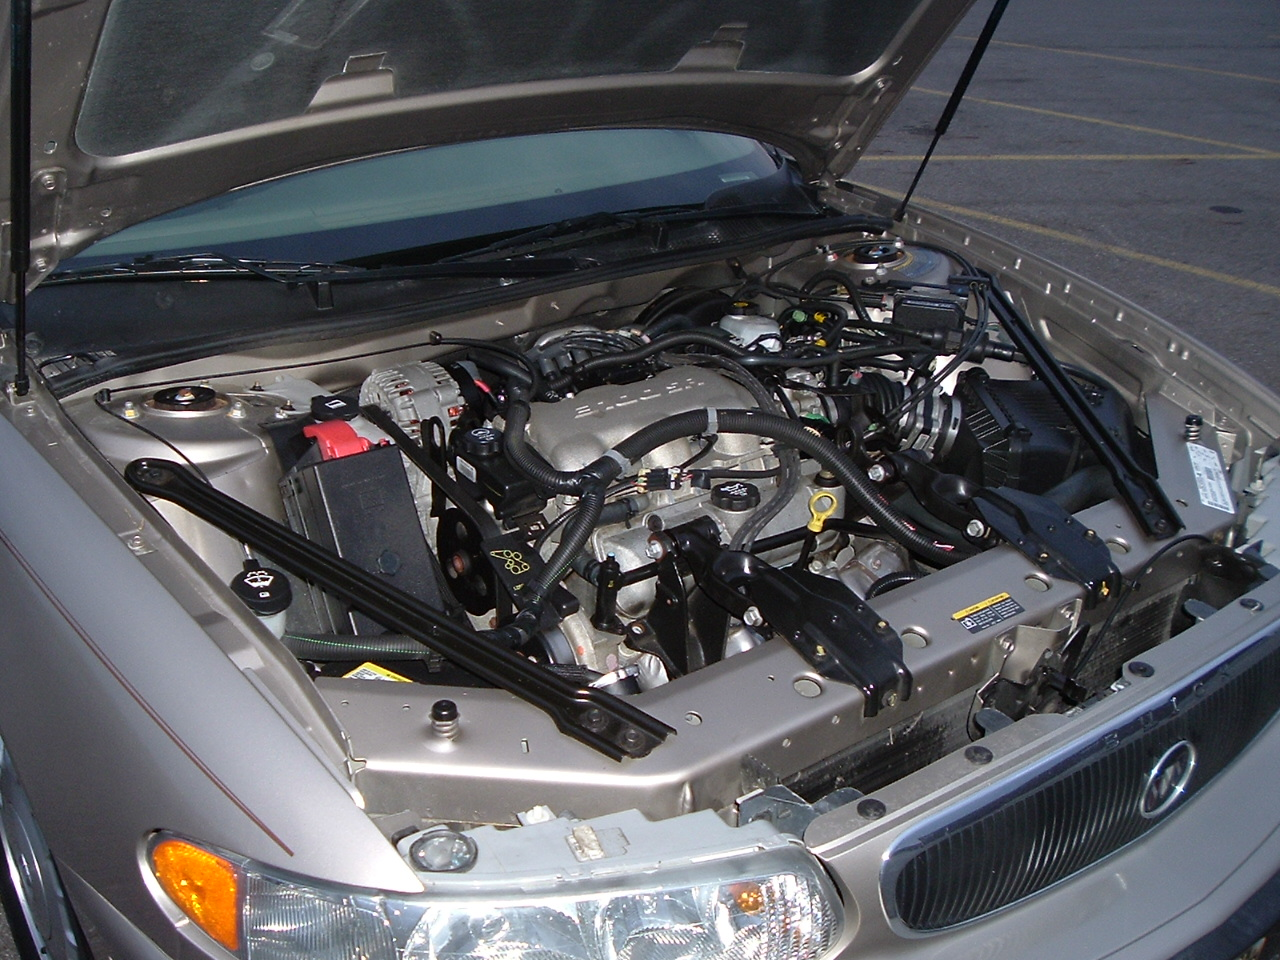 file:buick century 3100 v6.jpg - wikimedia commons chevy lumina 3100 v6 engine diagram 1998 2002 buick 3100 sfi v6 engine diagram #9